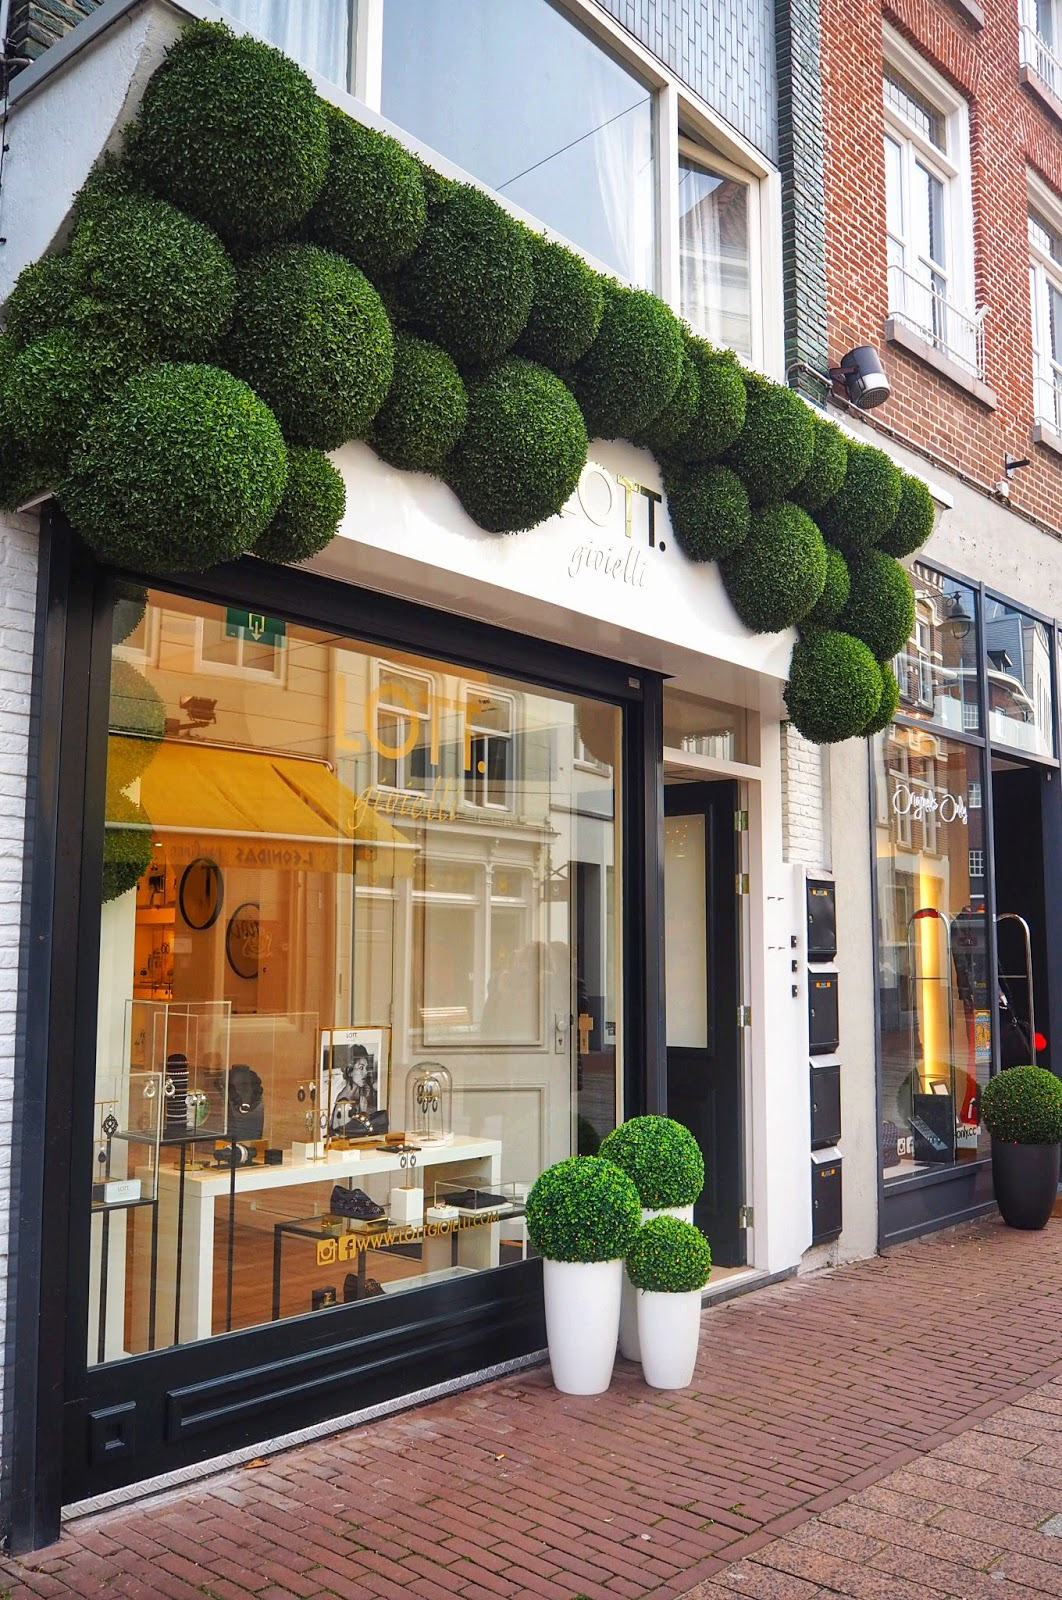 Uniquely decorated shops in Den Bosch